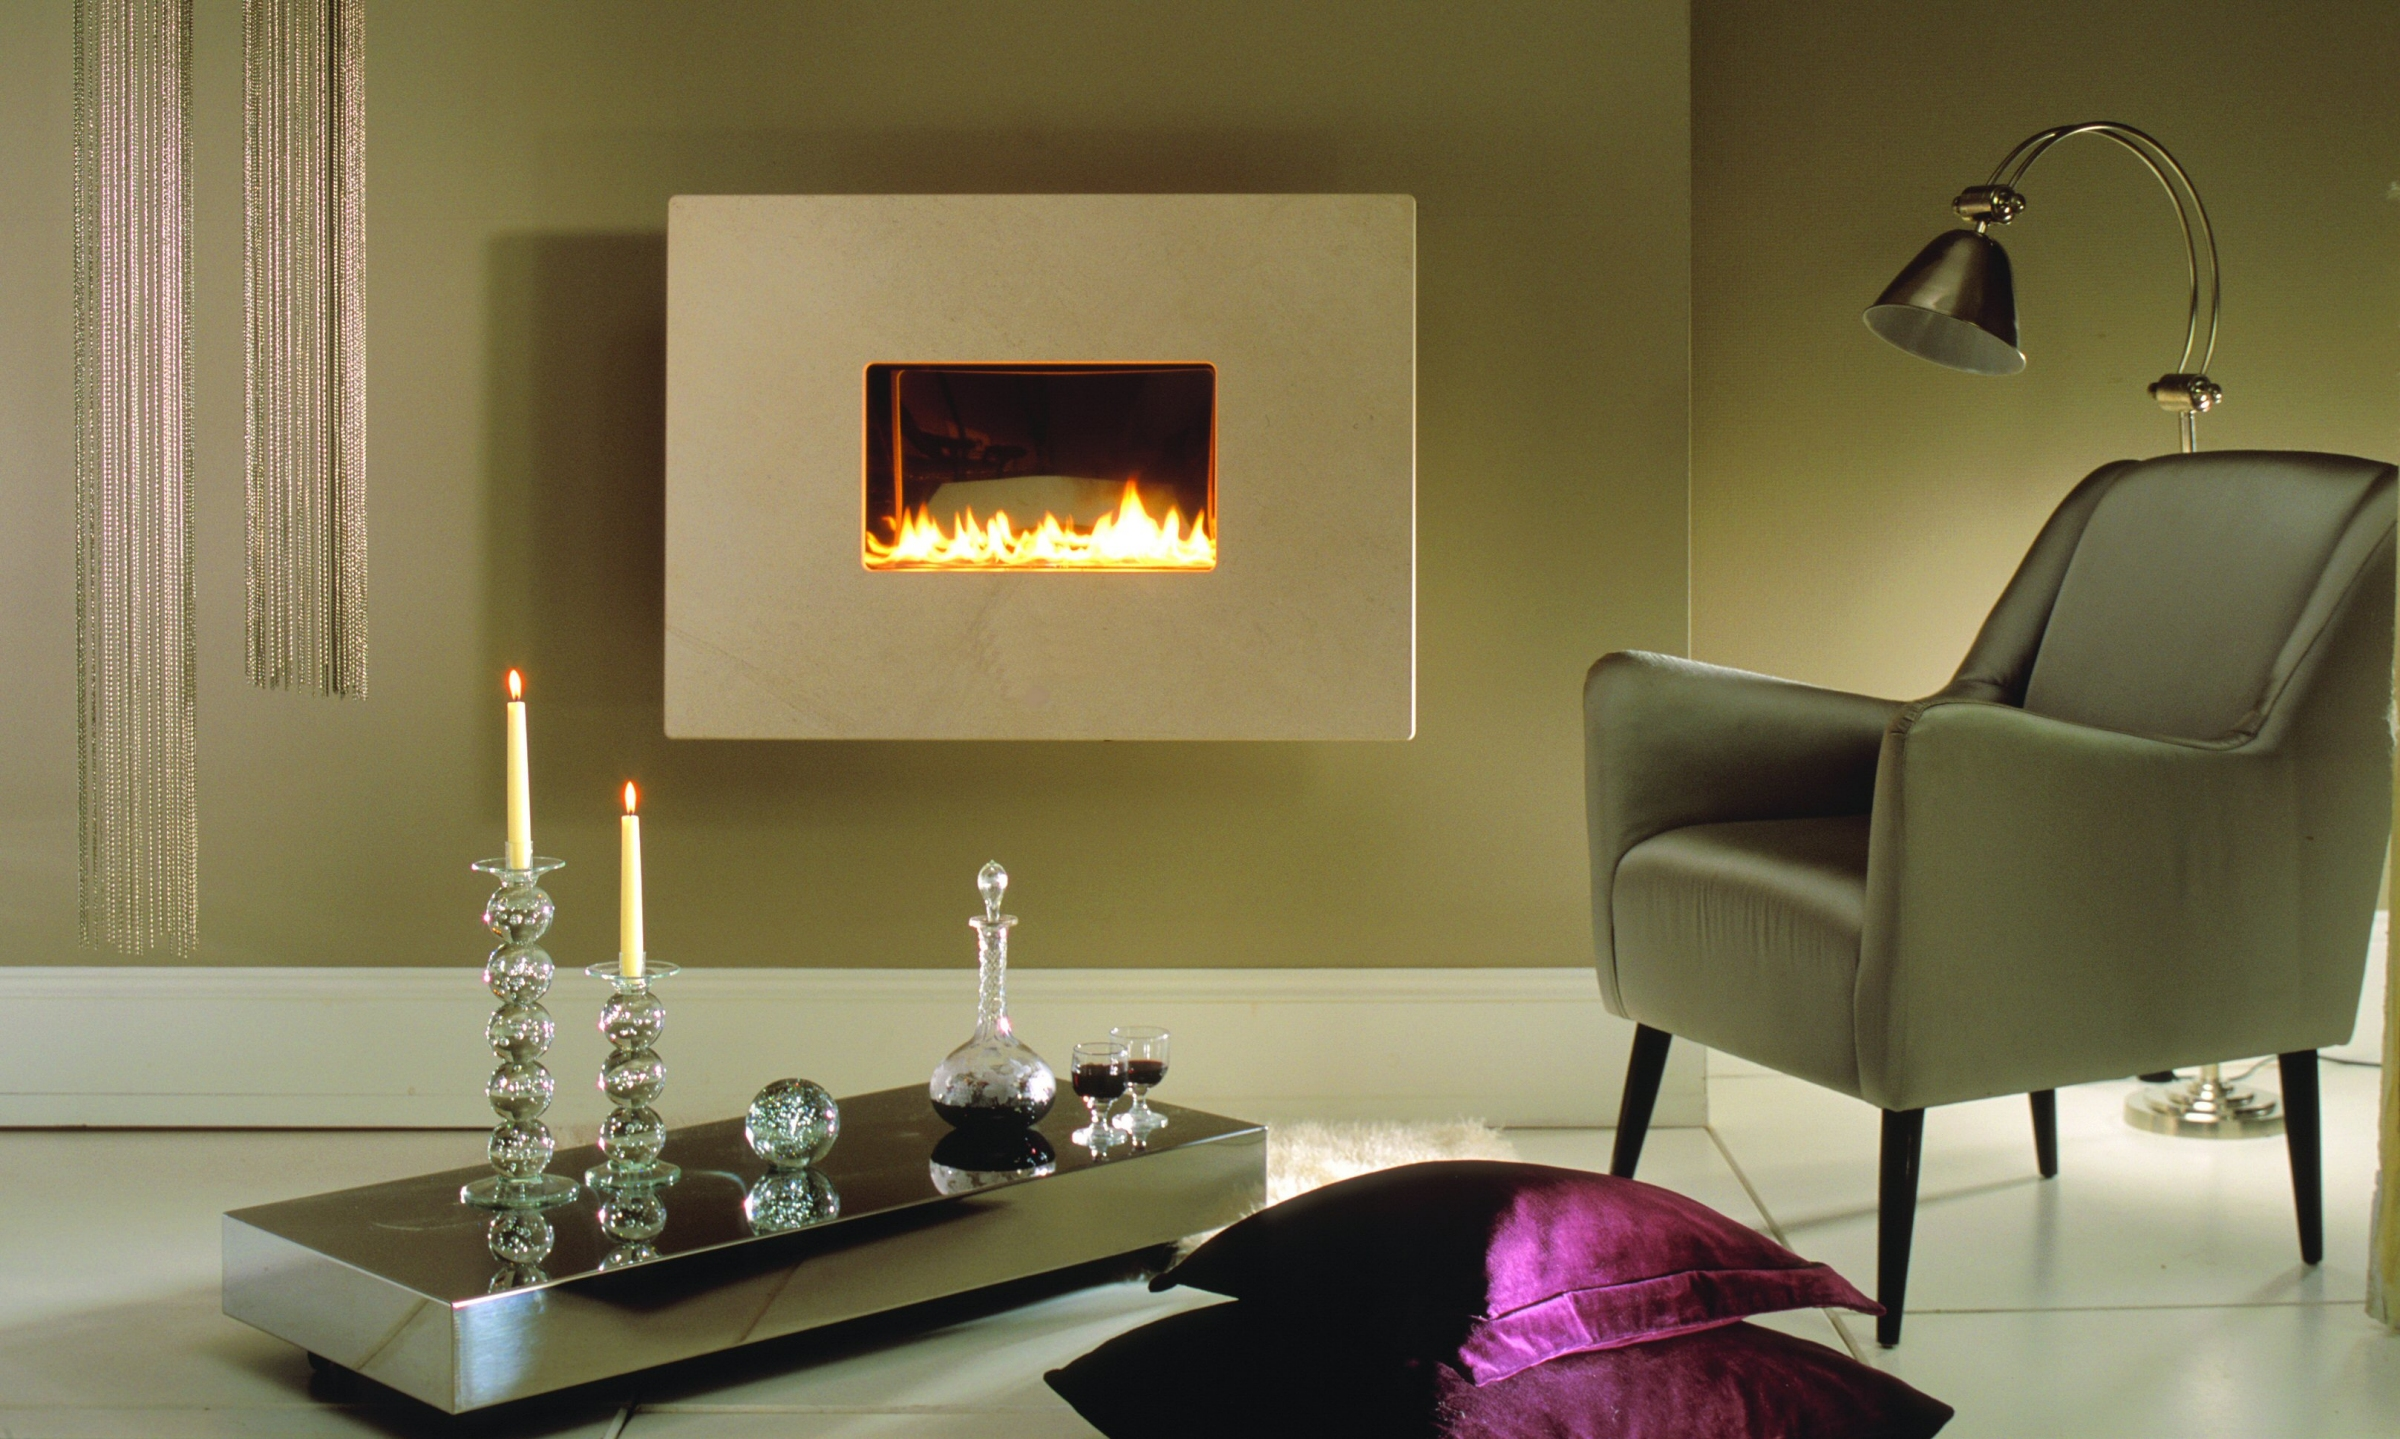 jc panoramic pin glass fireplace hanging bordelet industries zelia with